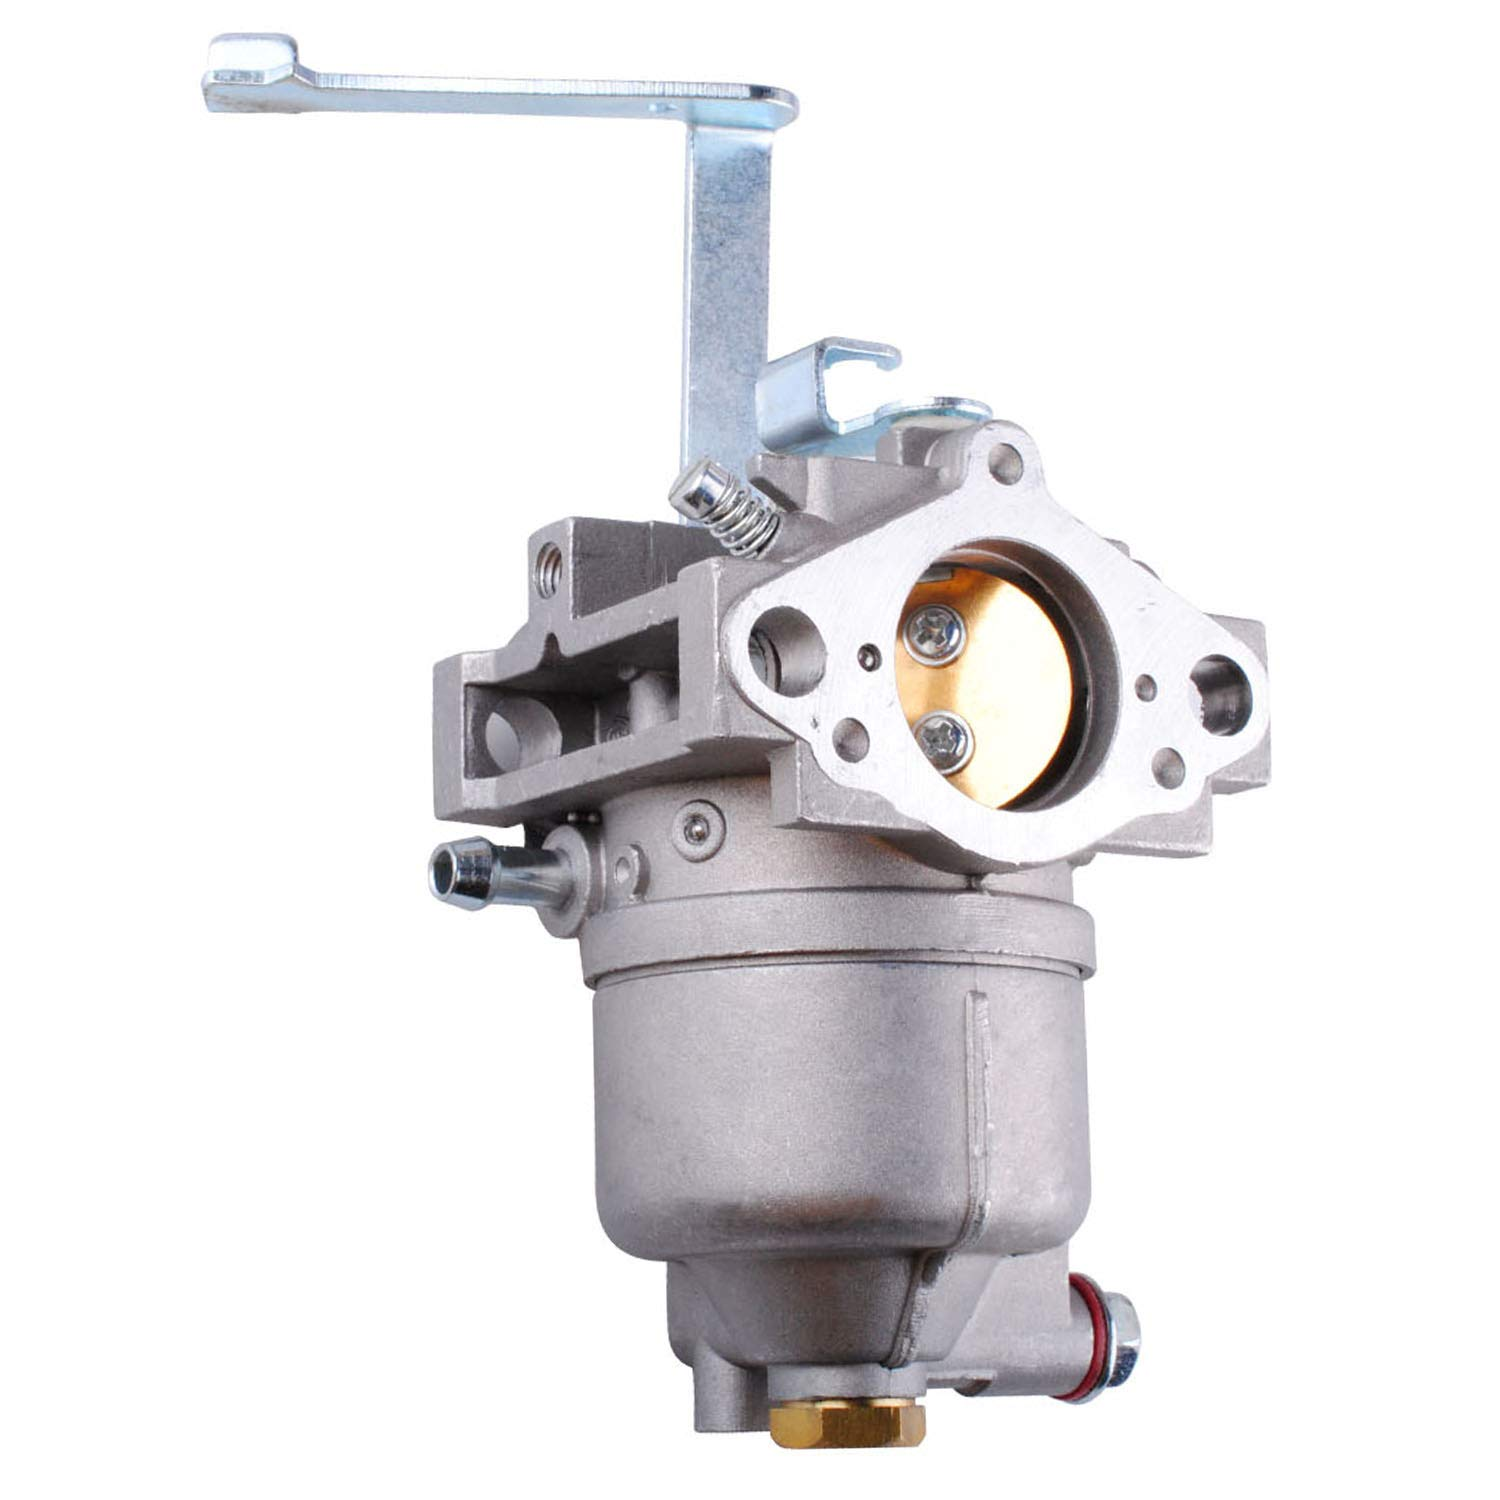 Gekufa EZ-MZ360-00CM Carburetor with Gasket Assembly Replacement Compatible with Yamaha Gasoline MZ360 Engine Without Solenoid Type A